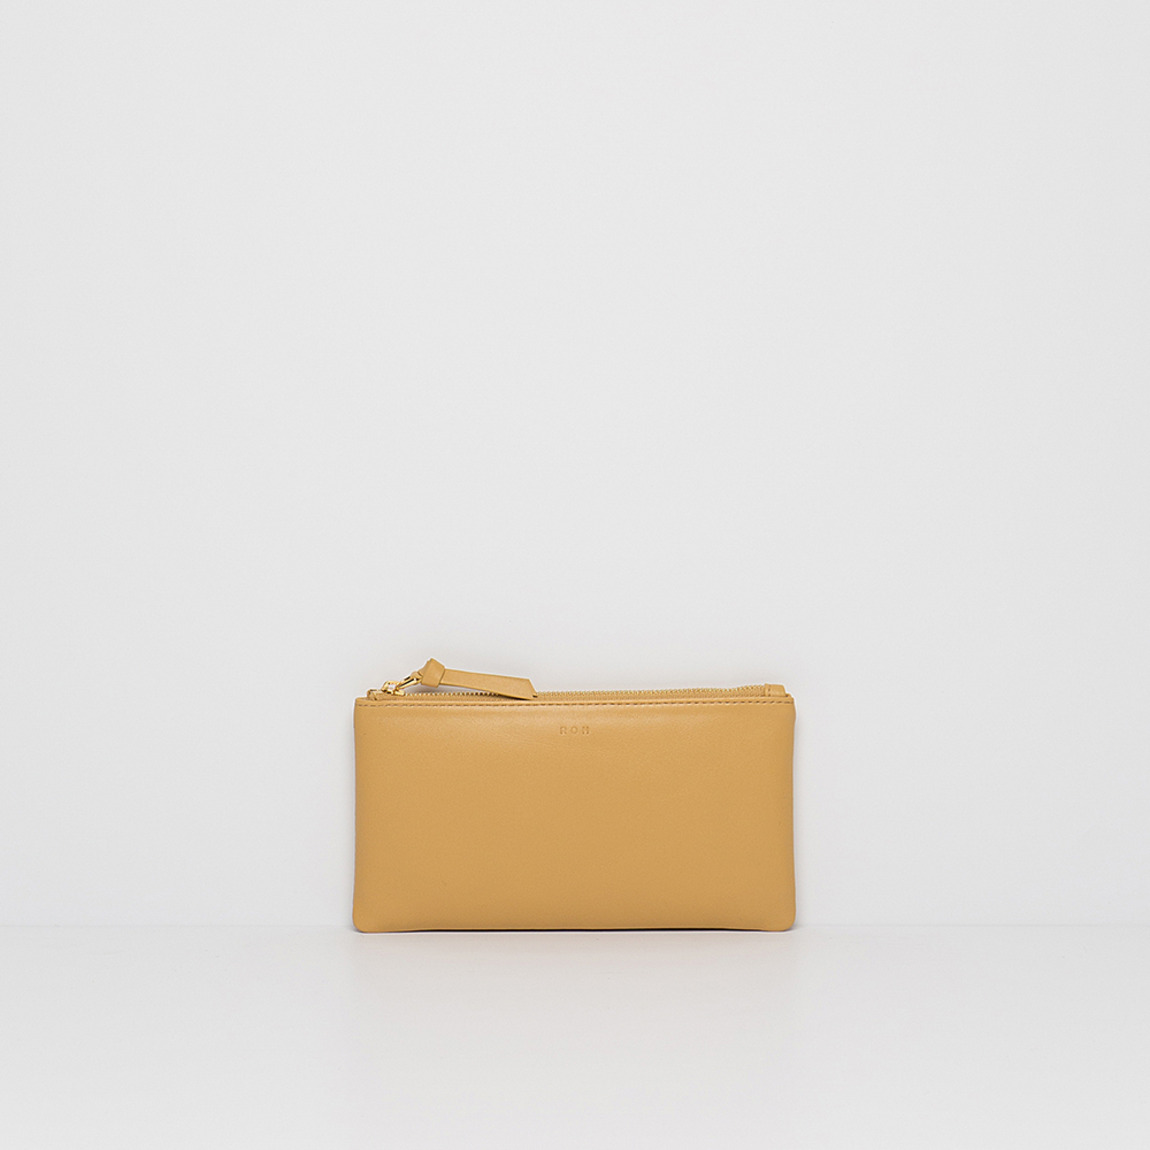 Basic Wallet Objet 2 Yellow